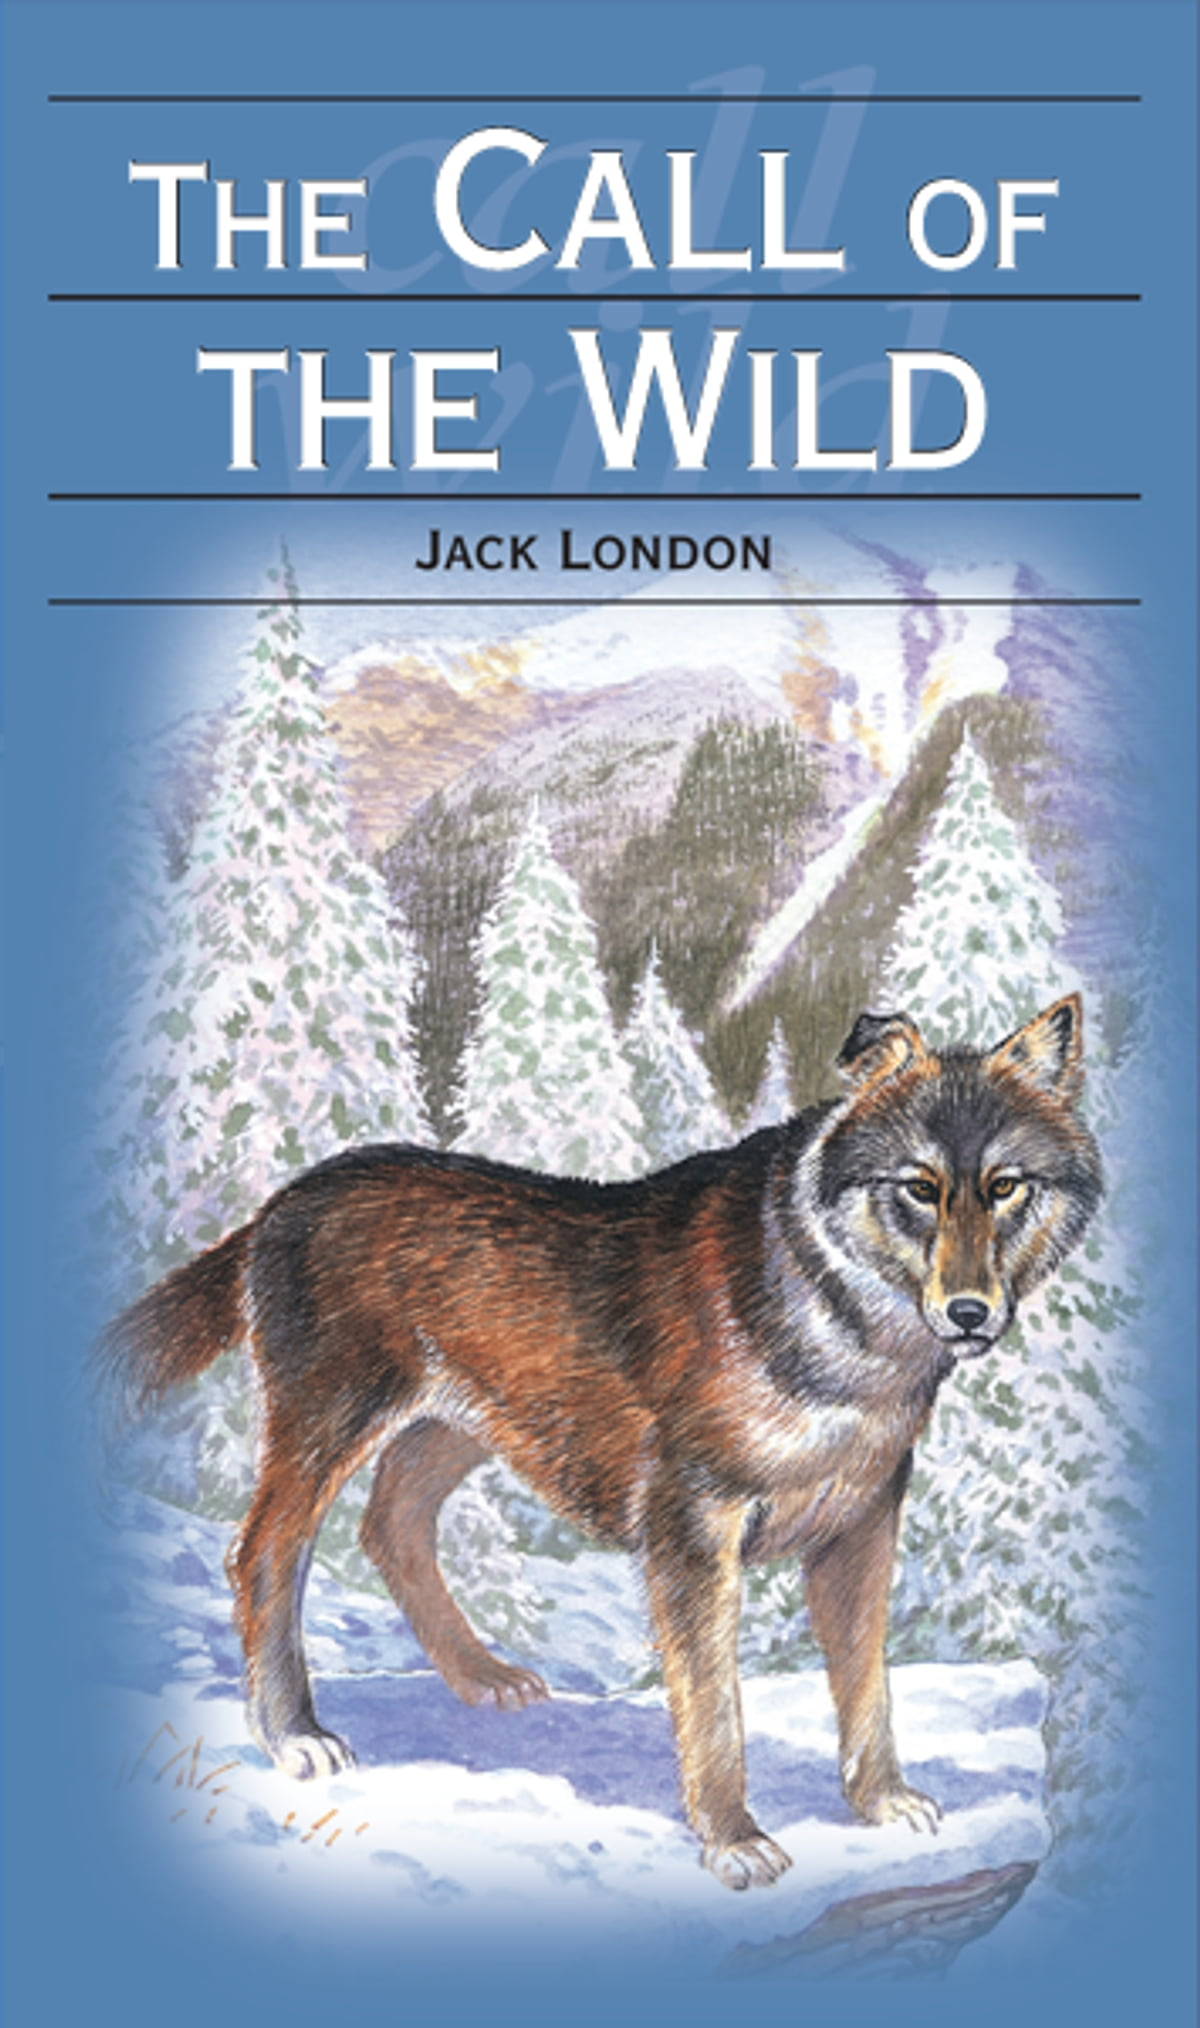 Loyalty Rewards Program >> Call of the Wild eBook by Jack London - 9781743521960 ...